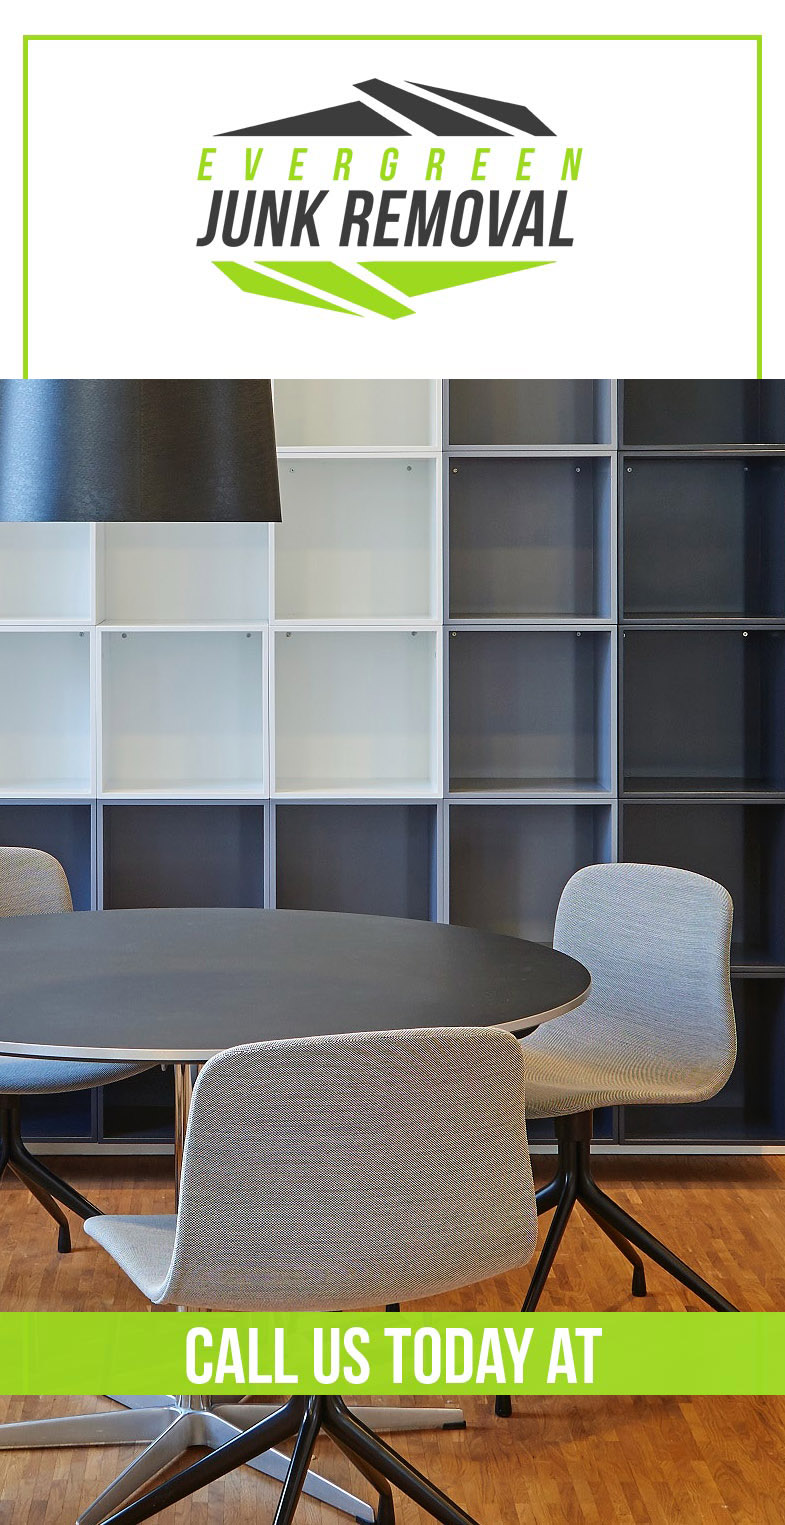 Office Cleaning Services Palm Beach Shores FL